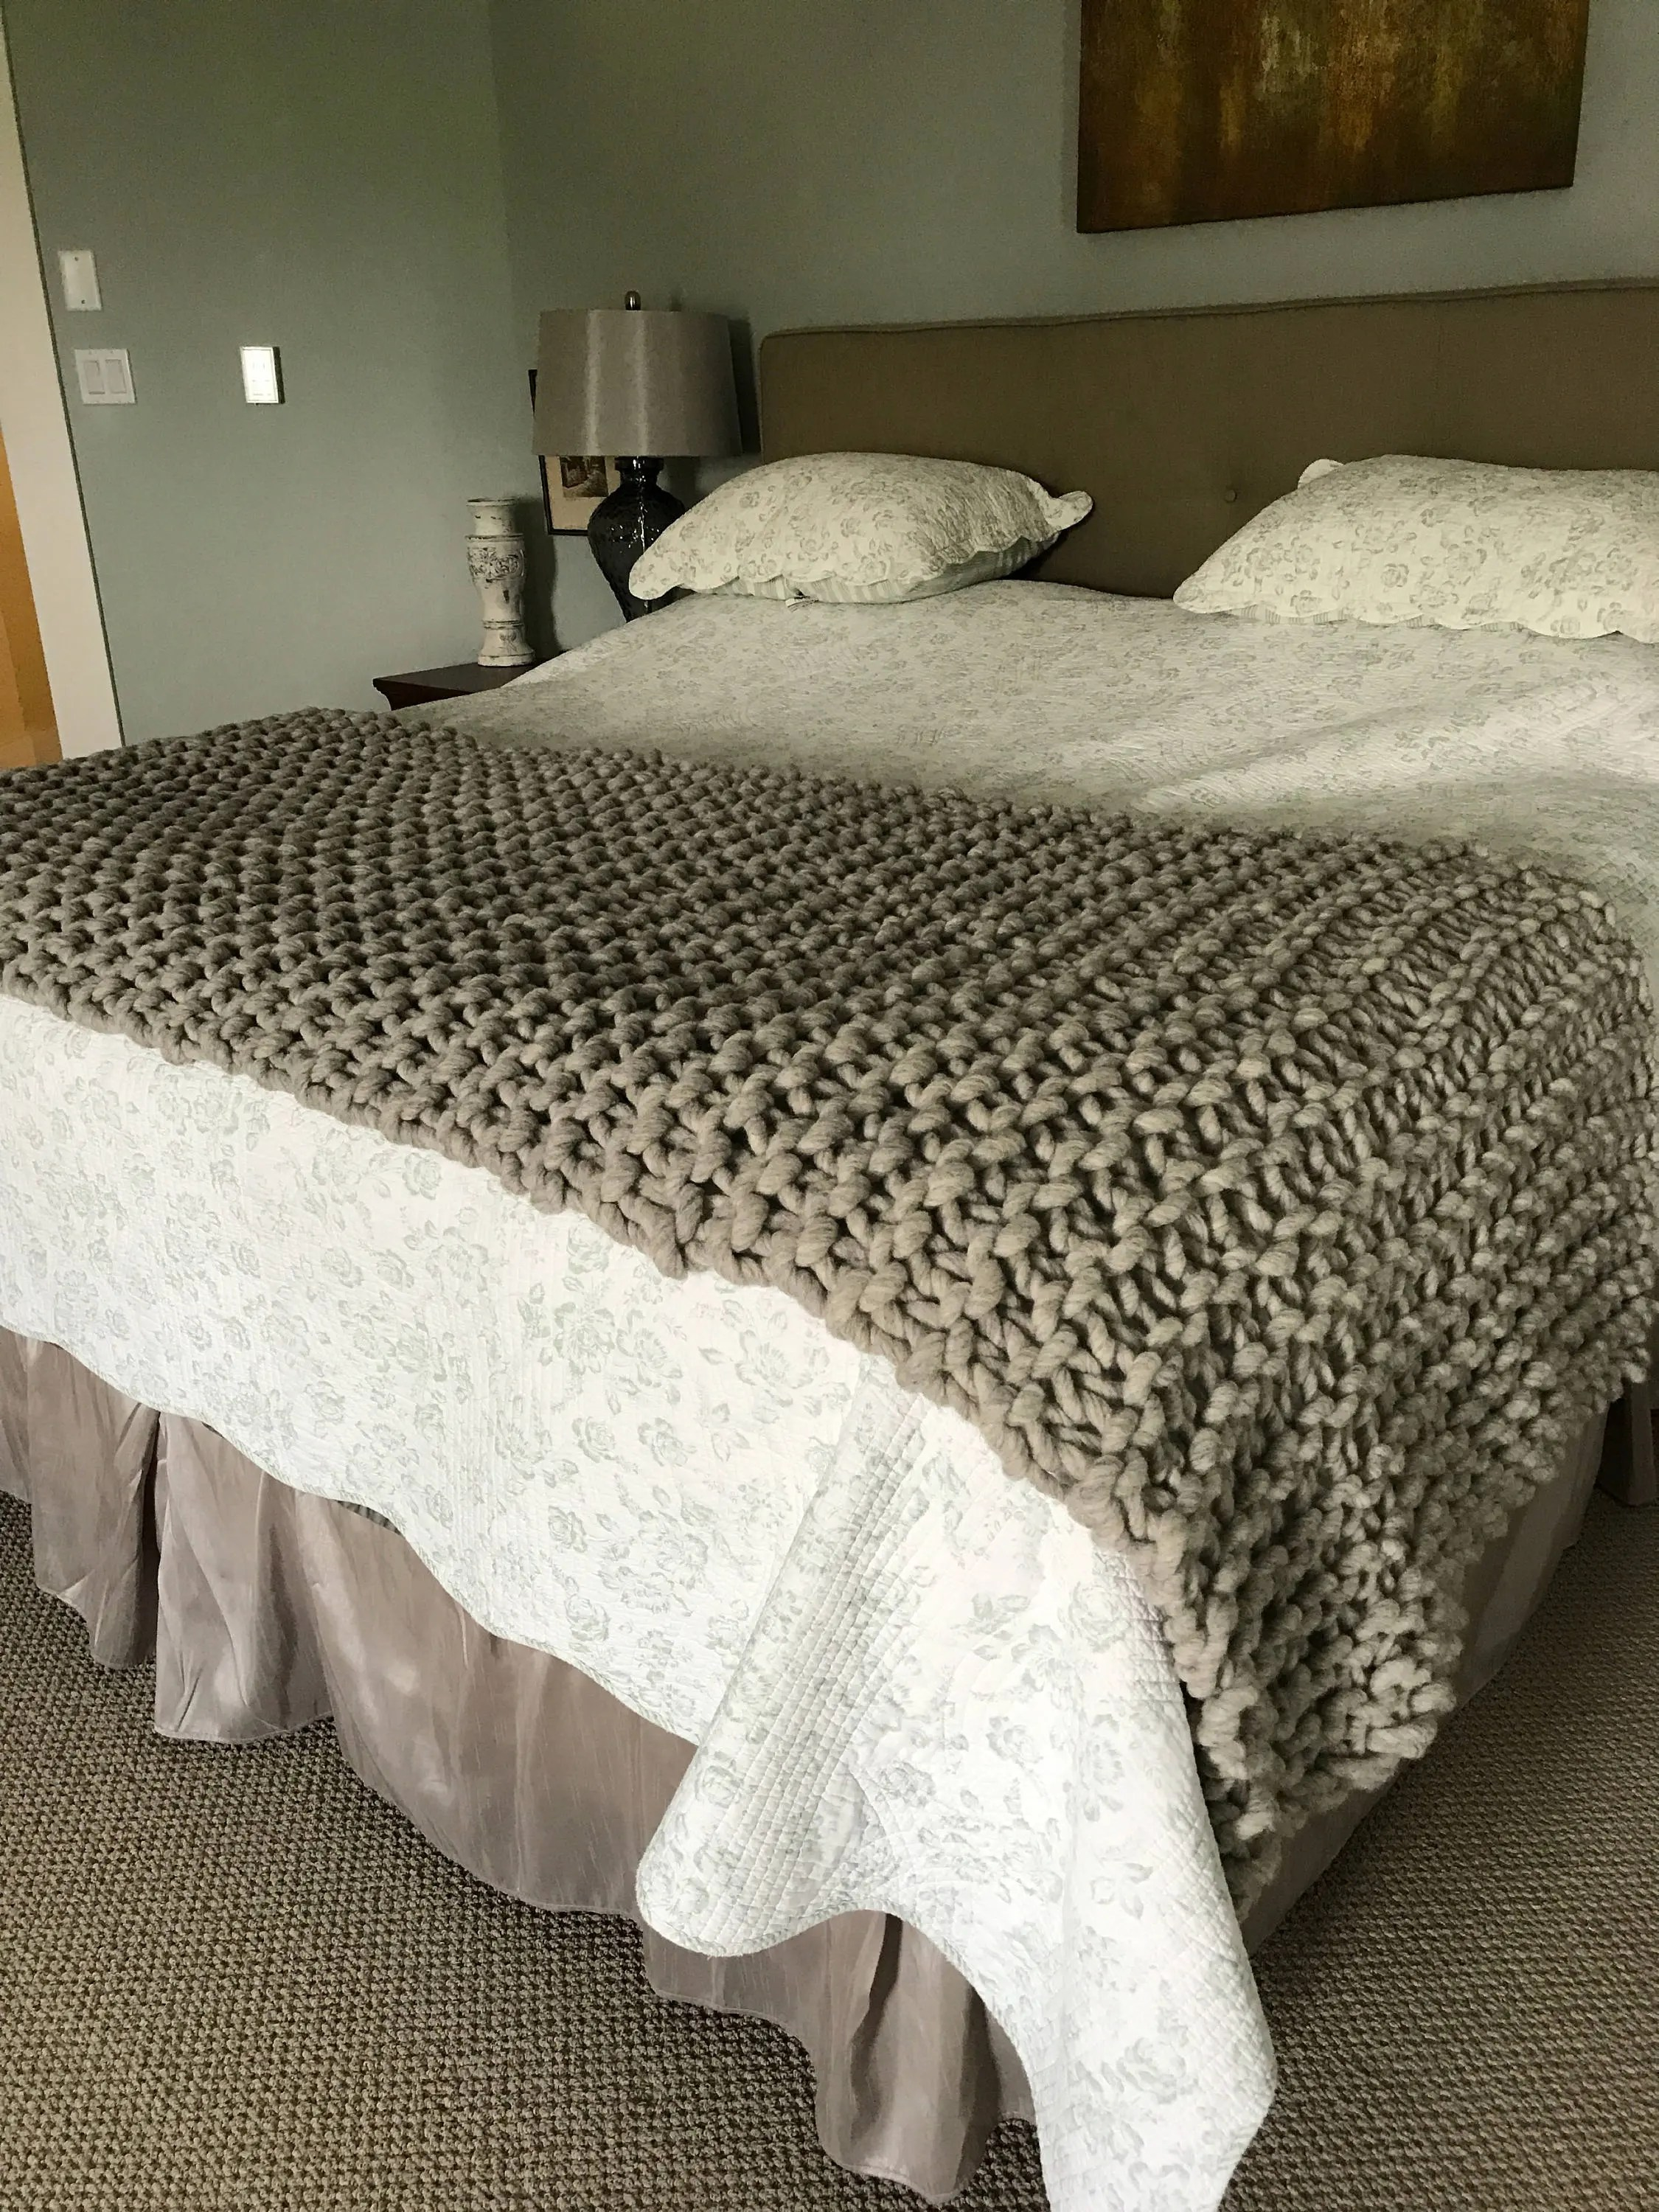 chunky wool knit bed runner for a queen or king bed it is a beautiful luxury knitted blanket knit with handspun yarn